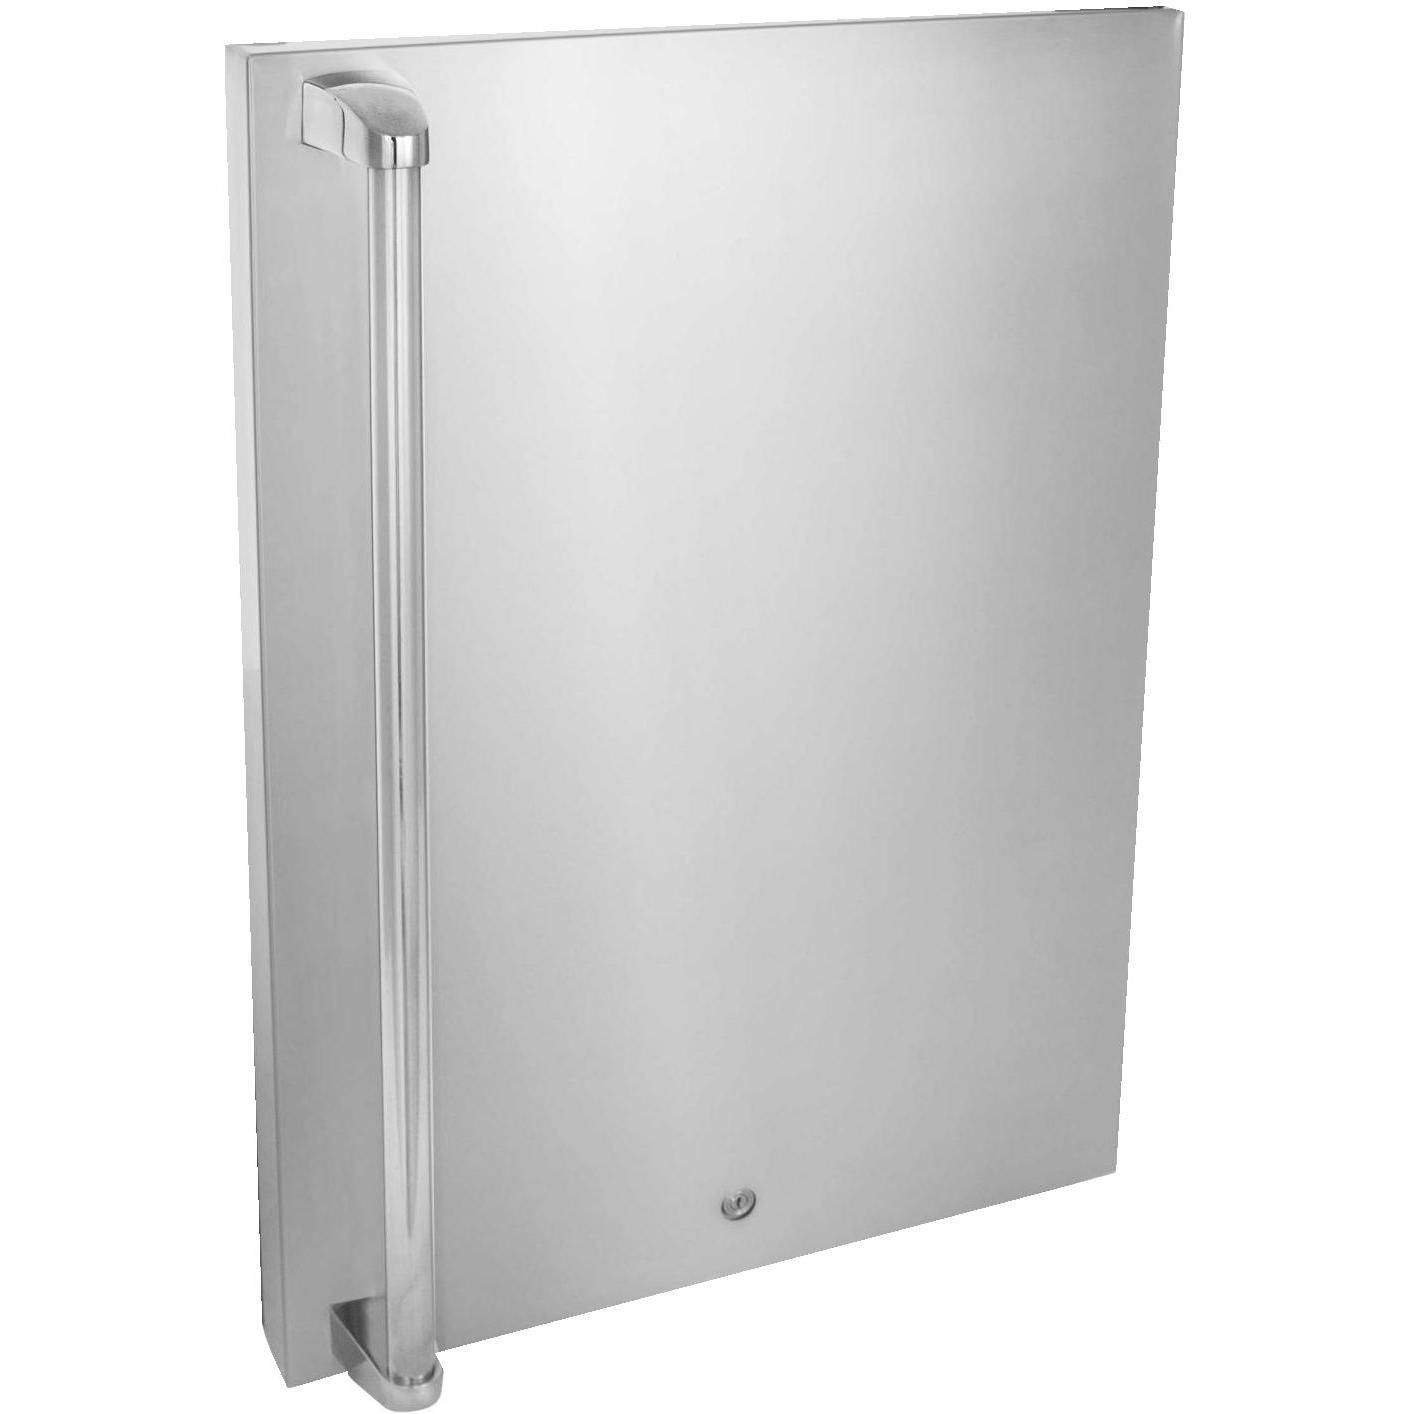 Blaze Right Hinged Stainless Steel Door Upgrade (BLZ-SSFP-4-5) by Blaze